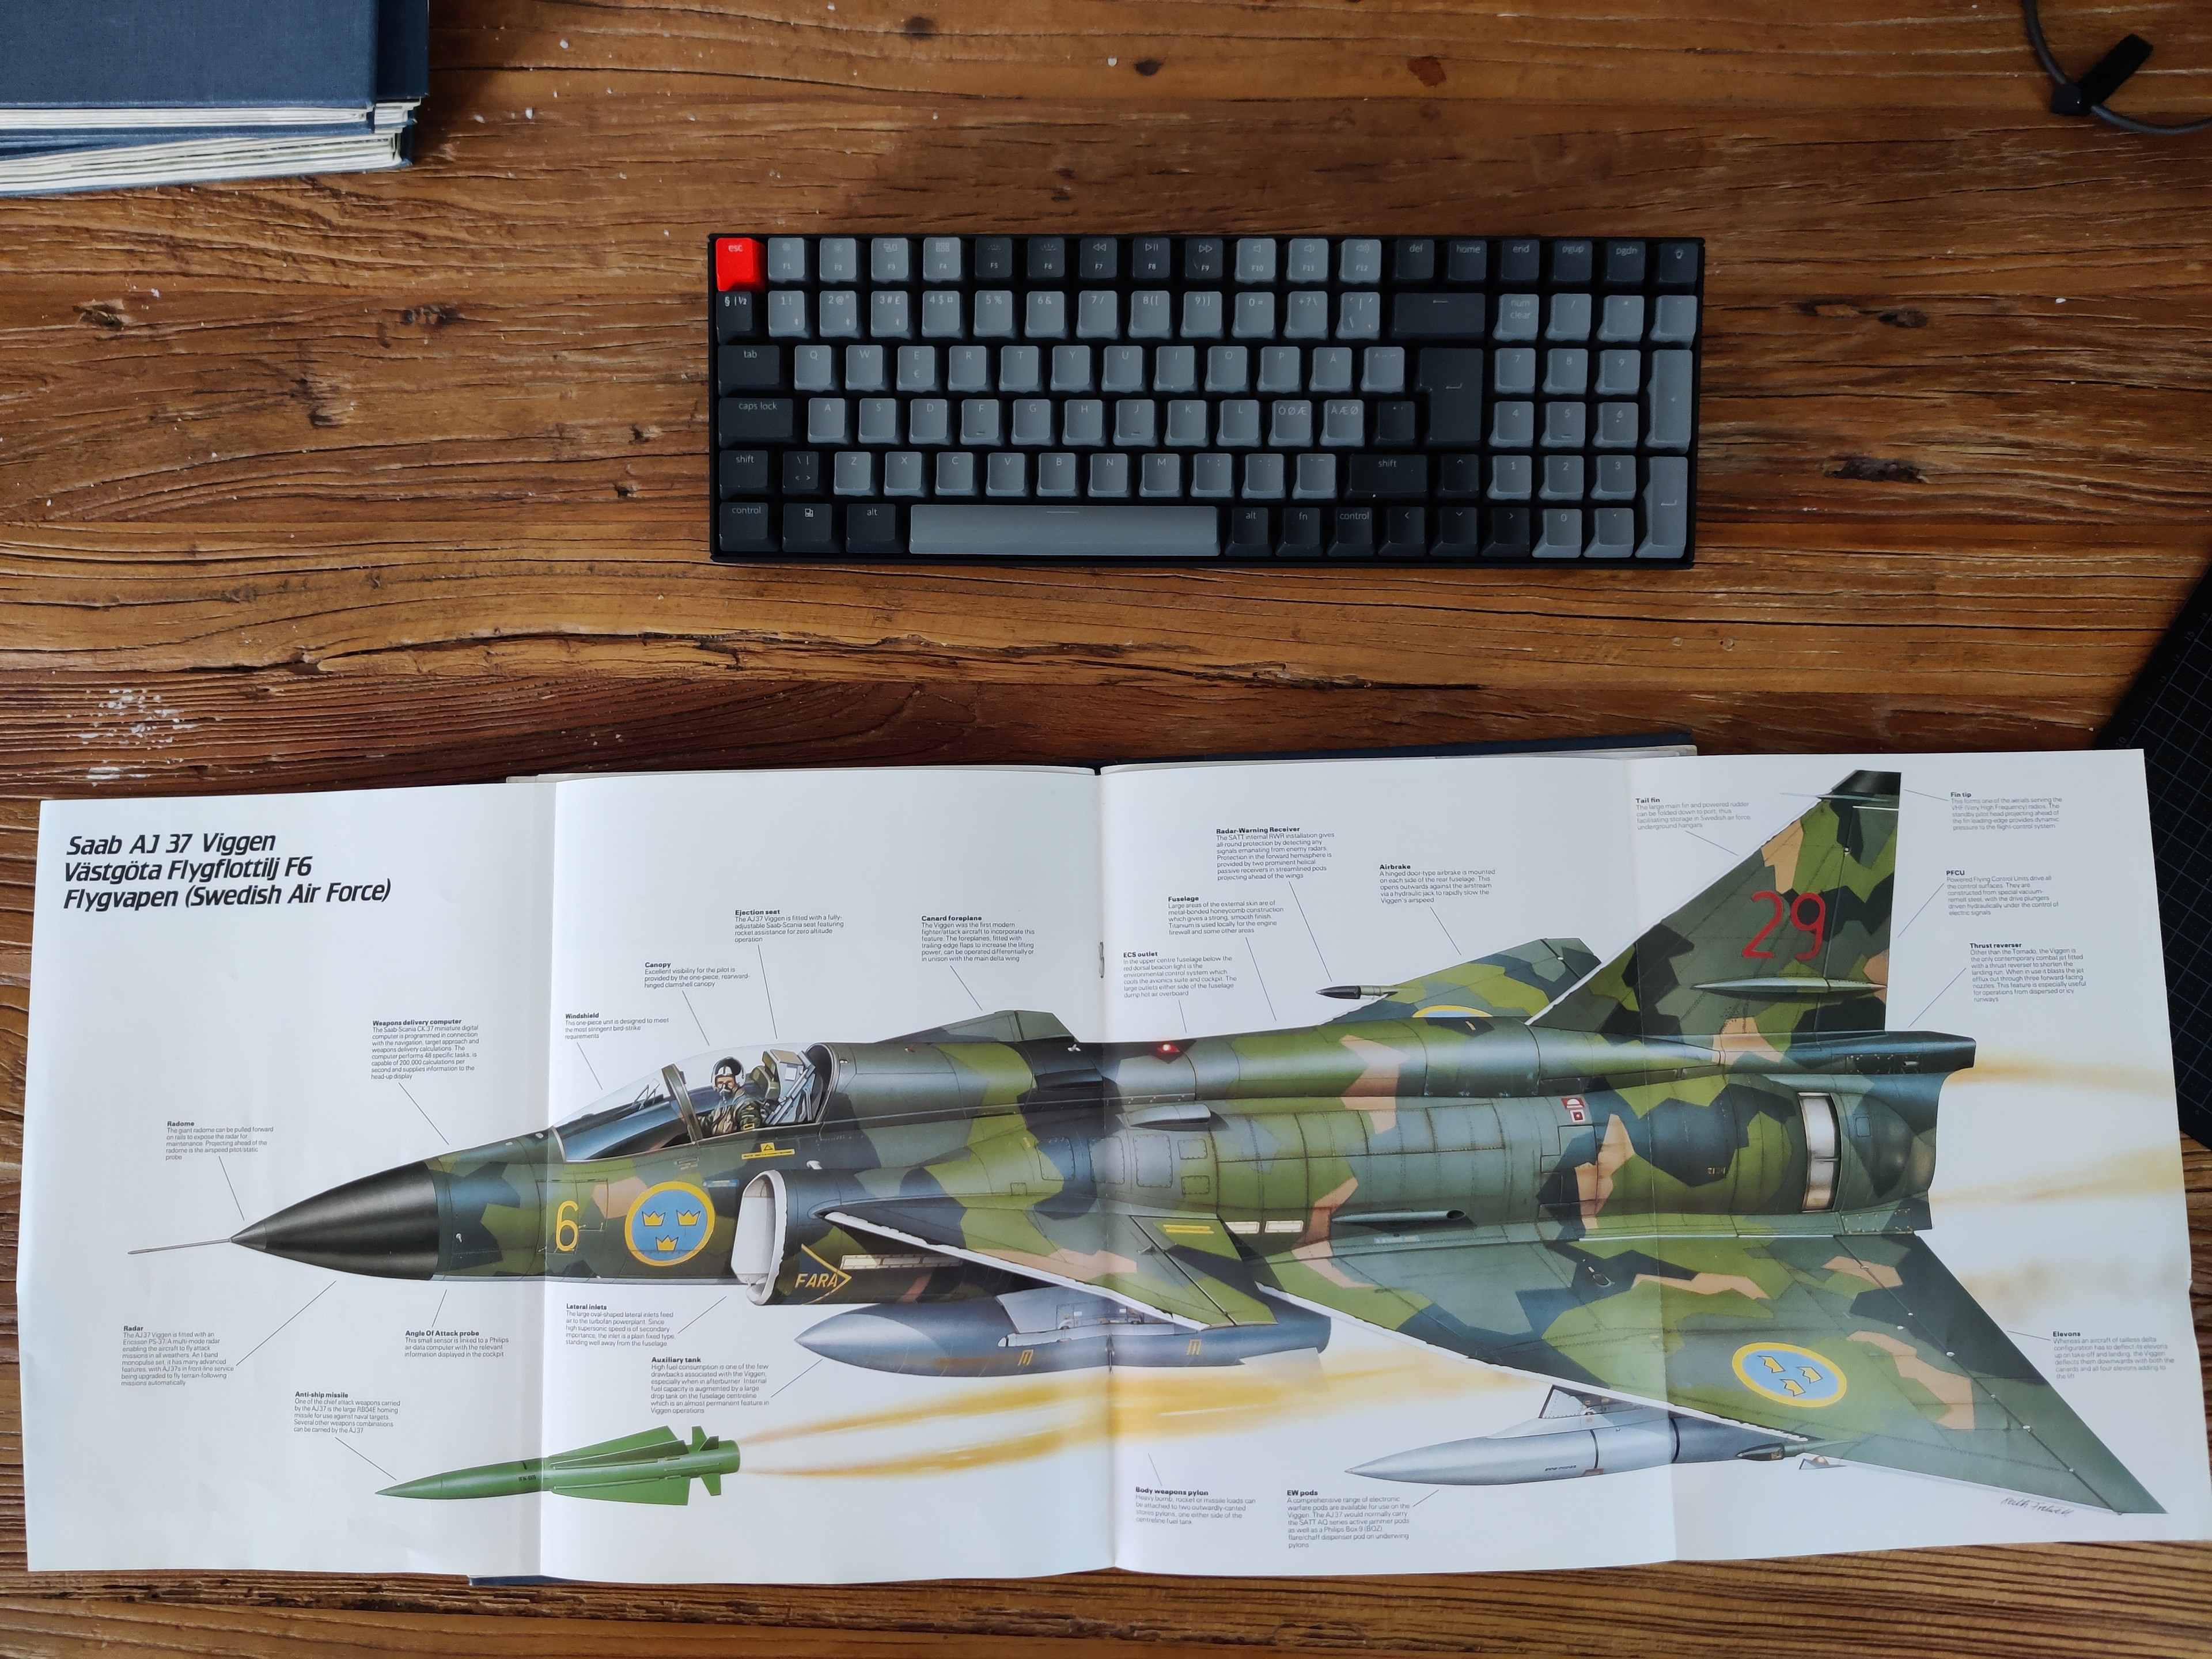 I used some of my SAAB illustration books for reference, the mighty Viggen!